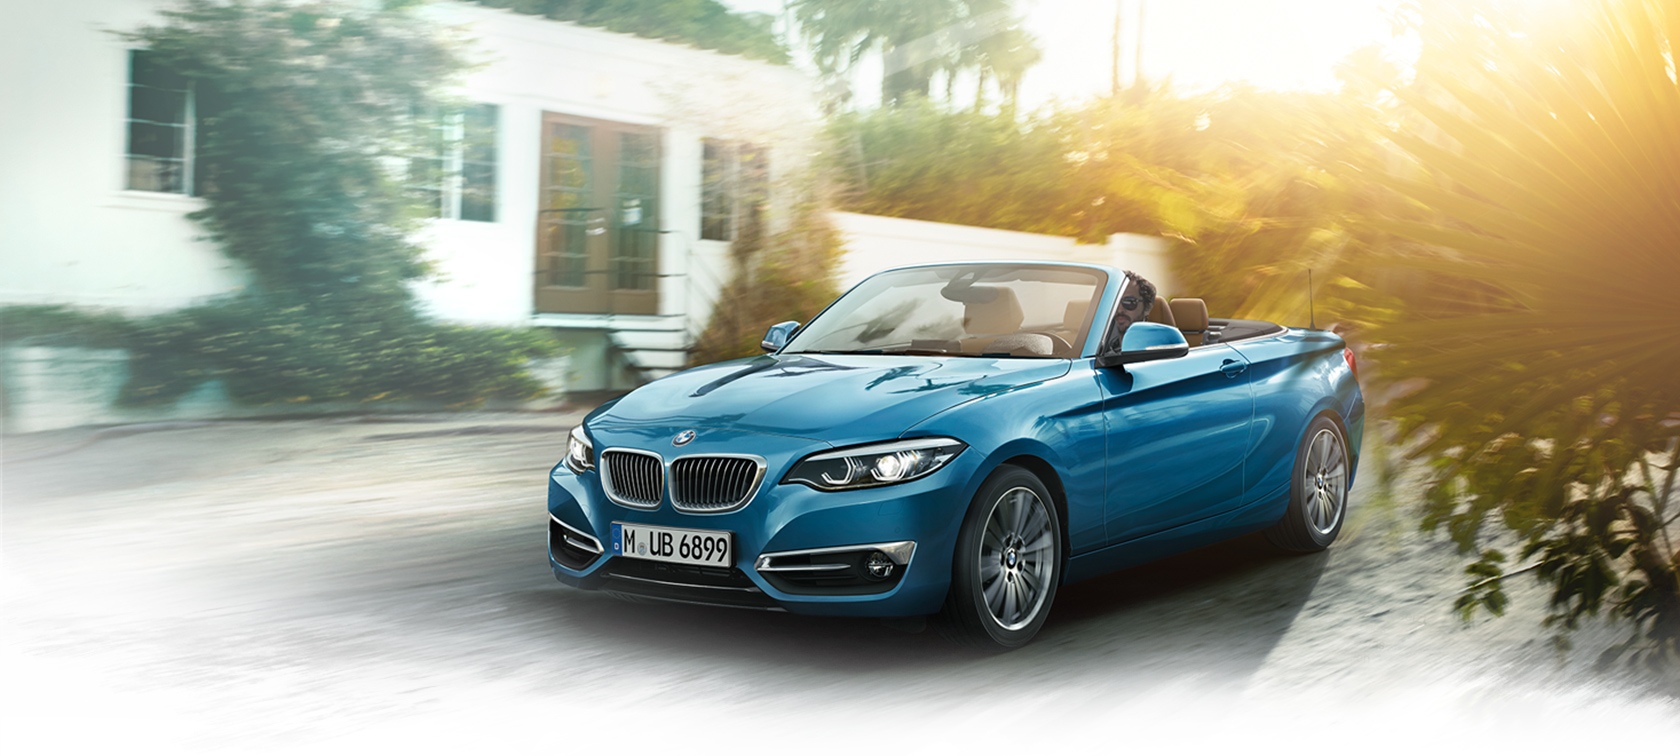 BMW 2-Series Convertible blue: frontside view by the houses